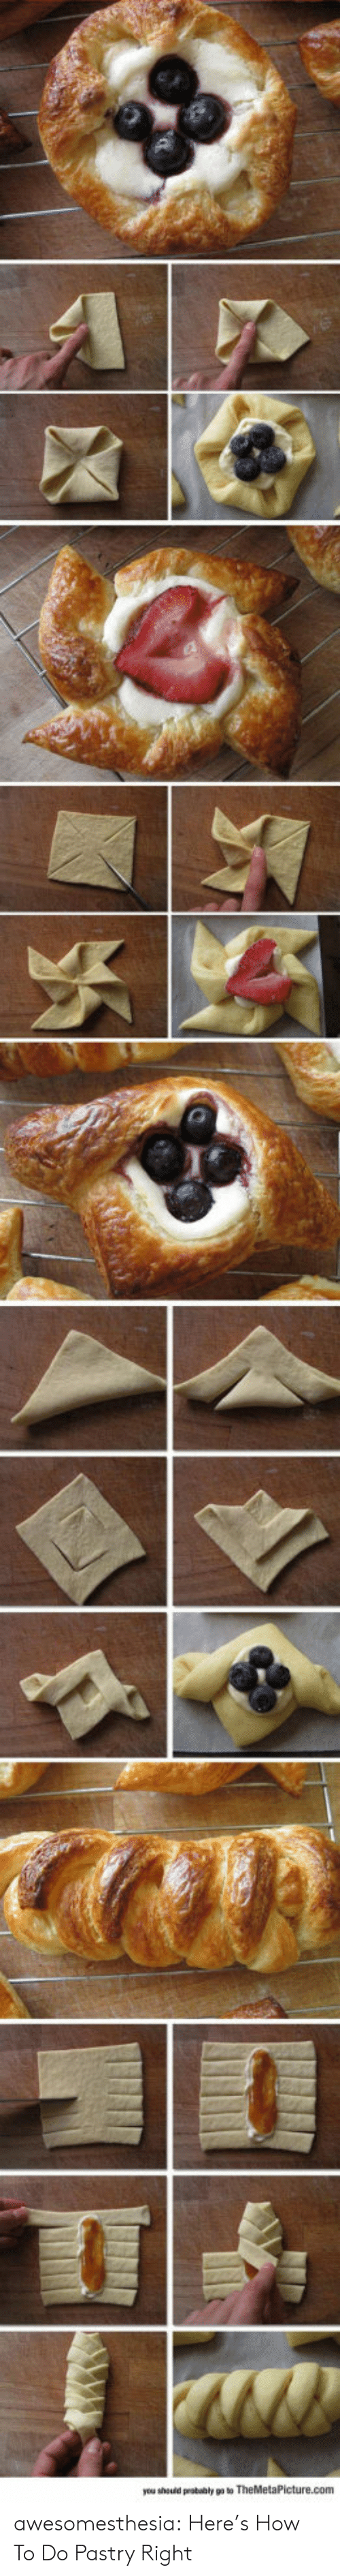 Tumblr, Blog, and How To: awesomesthesia:  Here's How To Do Pastry Right